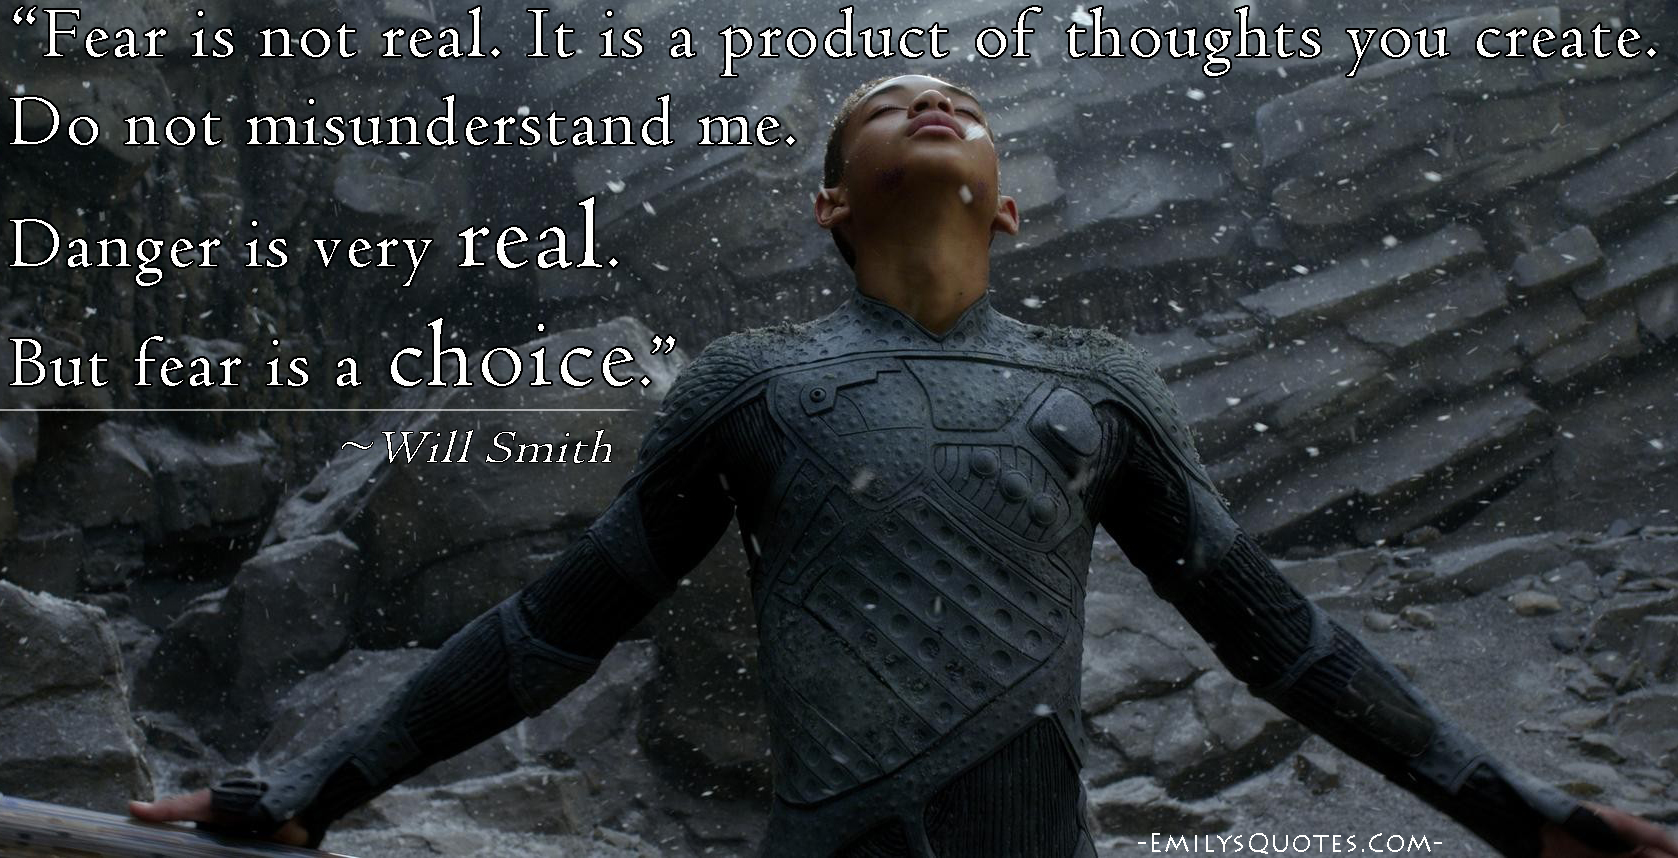 Doubt - Providence Life Coaching and Reiki Counseling - Will Smith